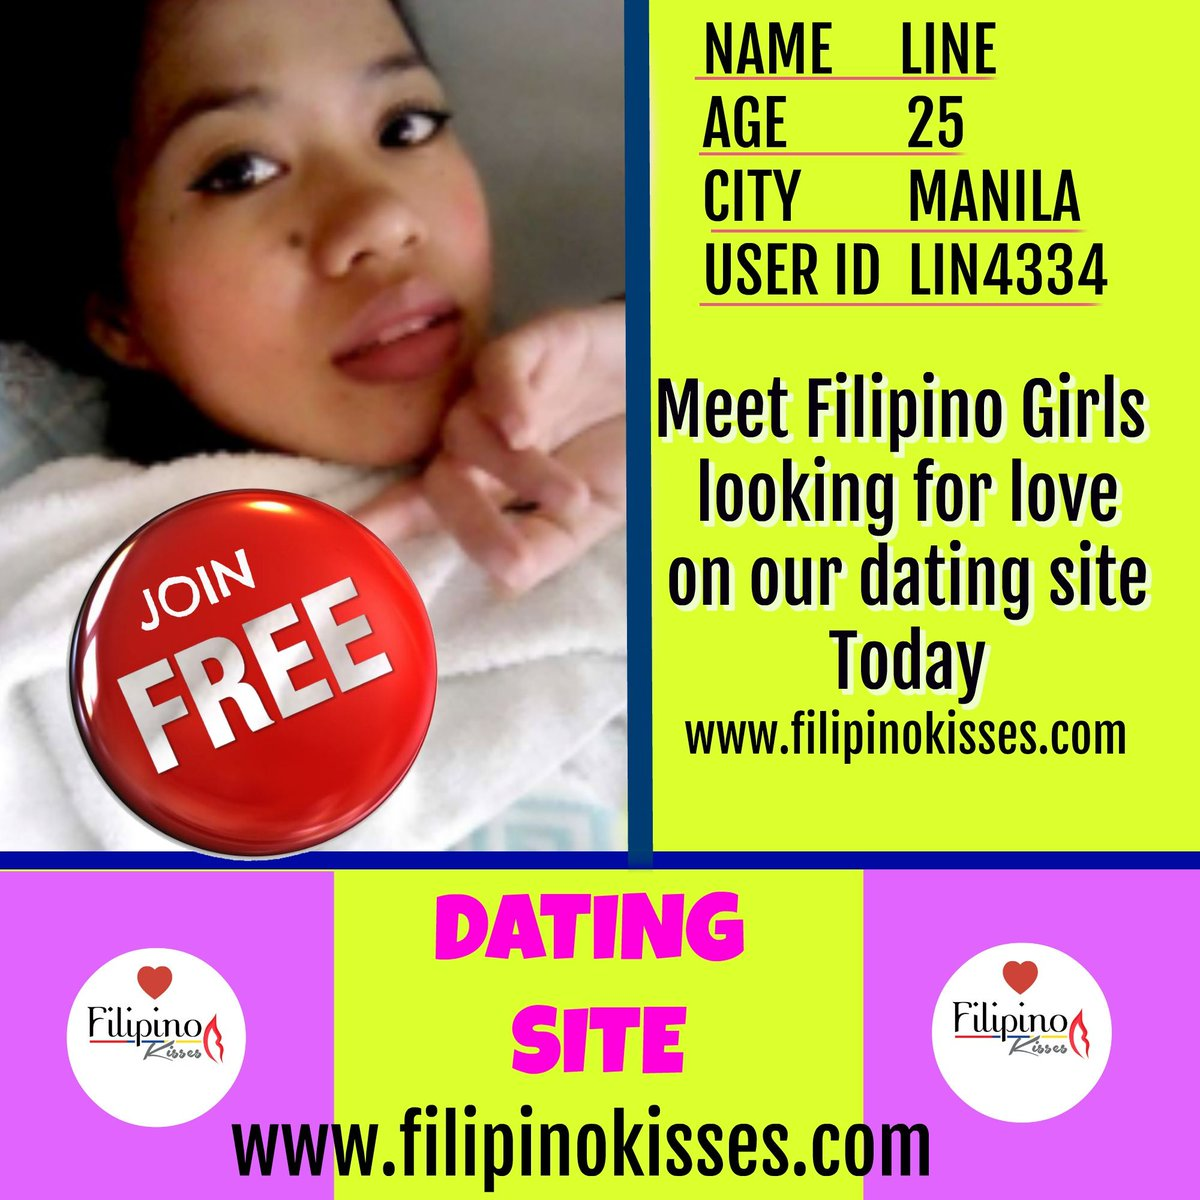 Filipinokisses